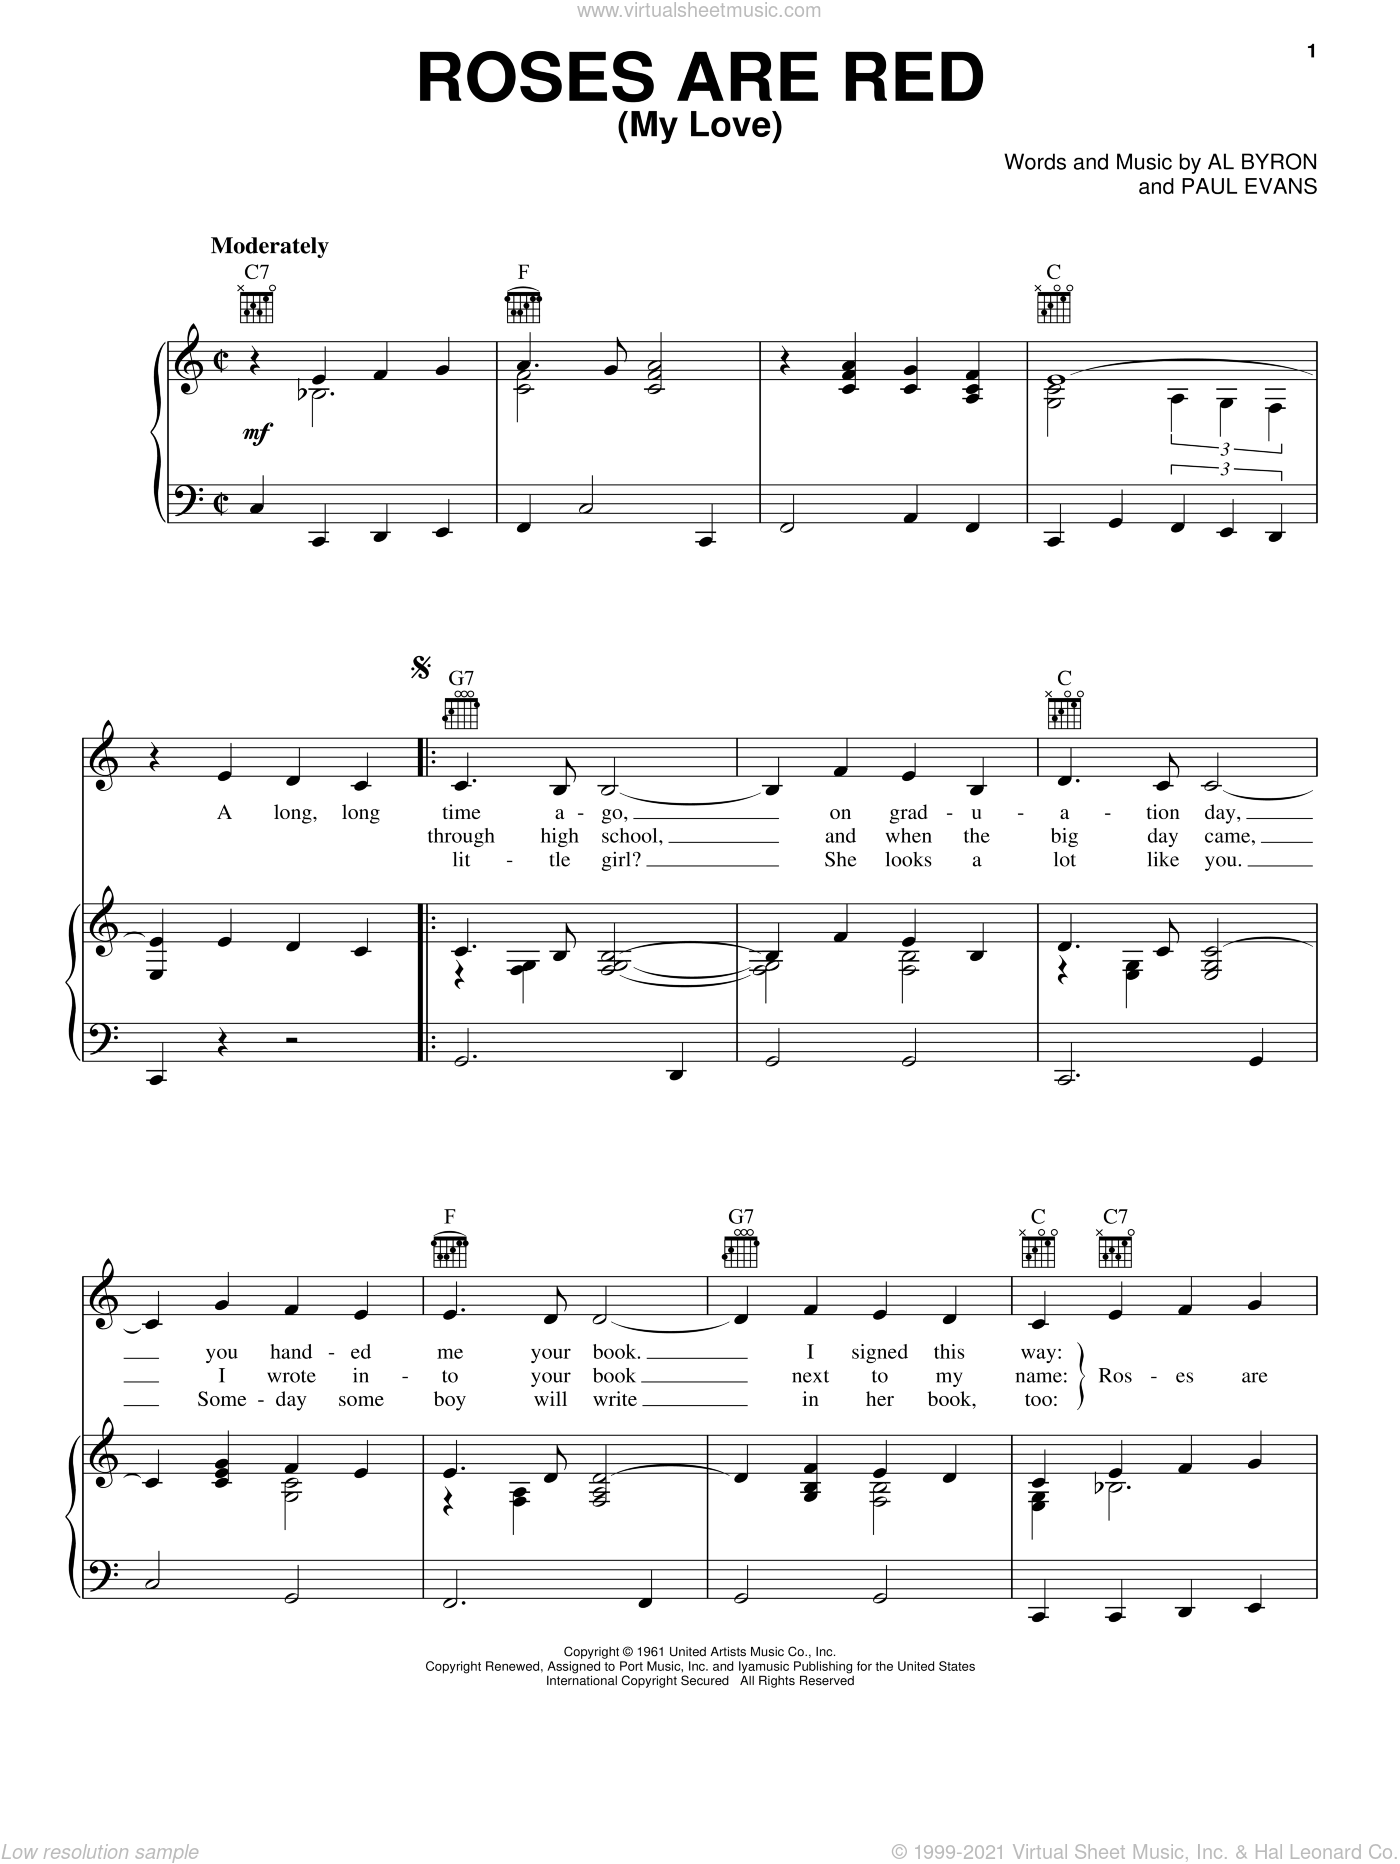 Roses Are Red, My Love sheet music for voice, piano or guitar by Paul Evans